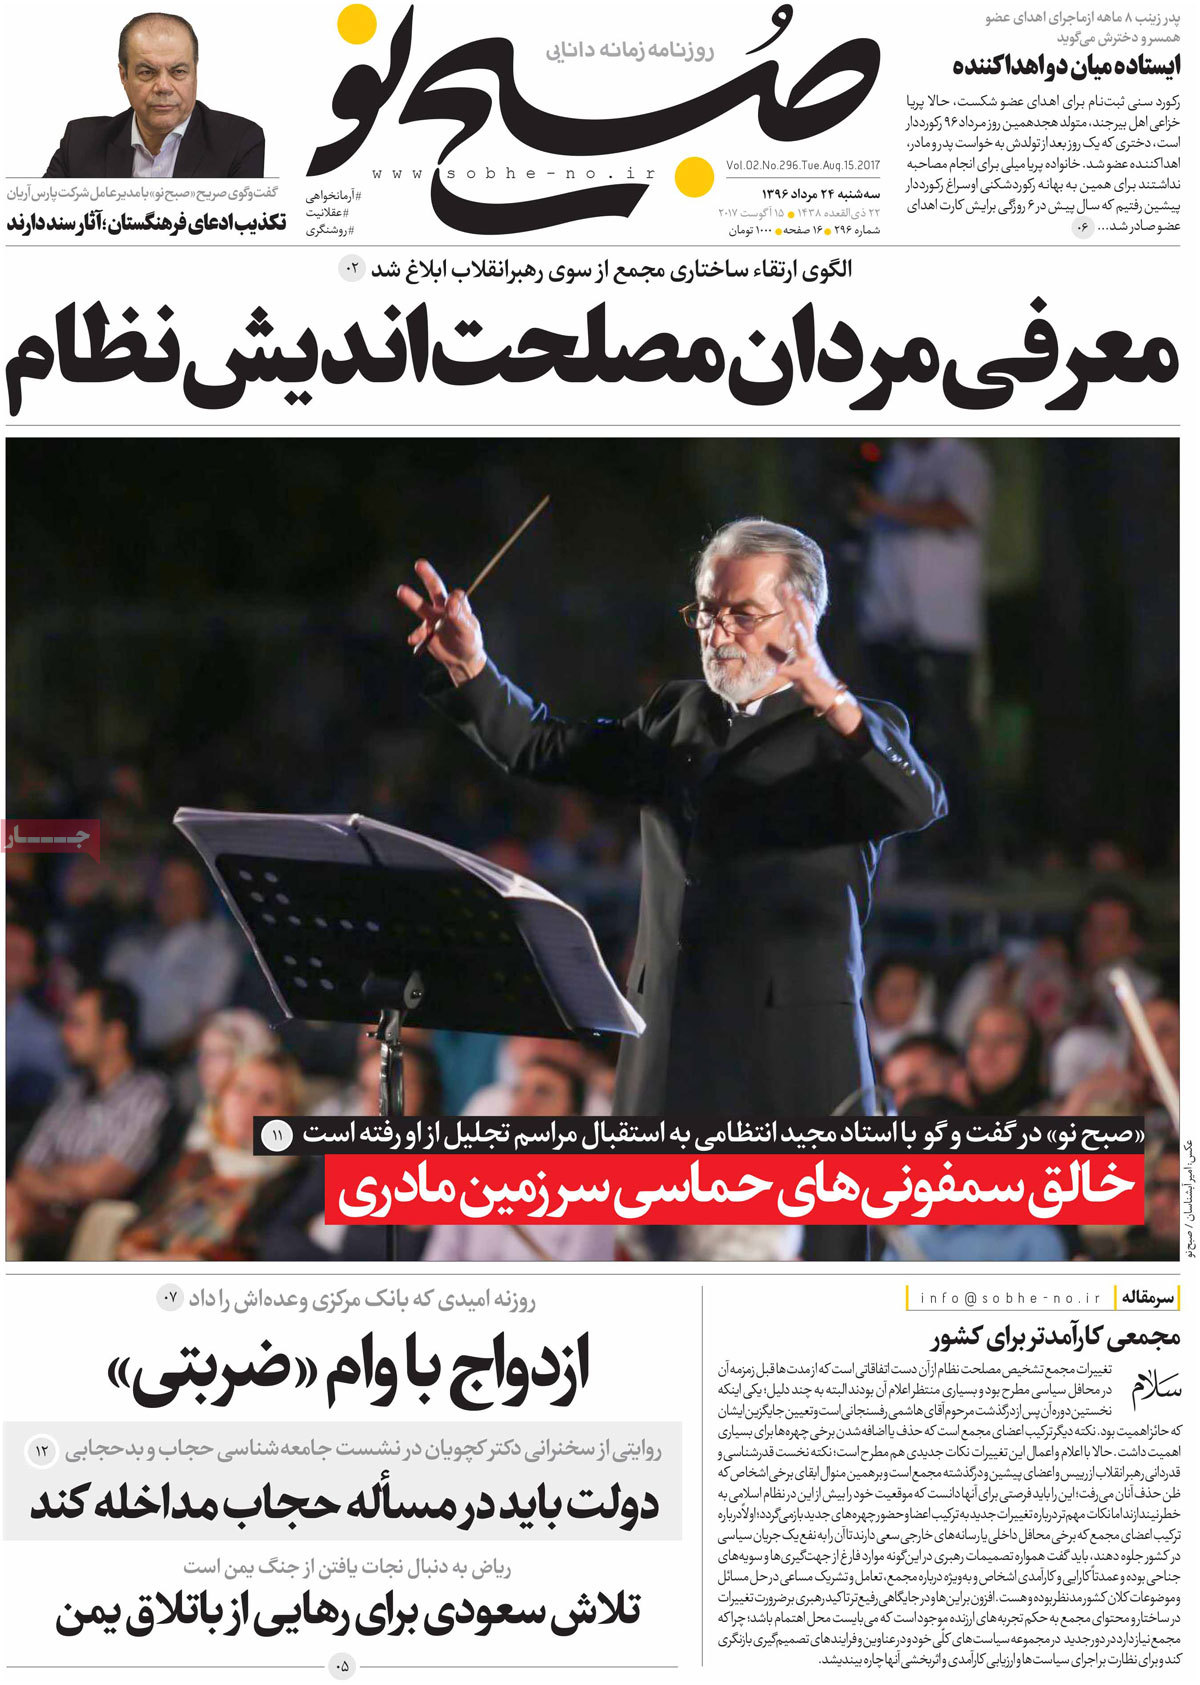 A Look at Iranian Newspaper Front Pages on August 15 - sobheno